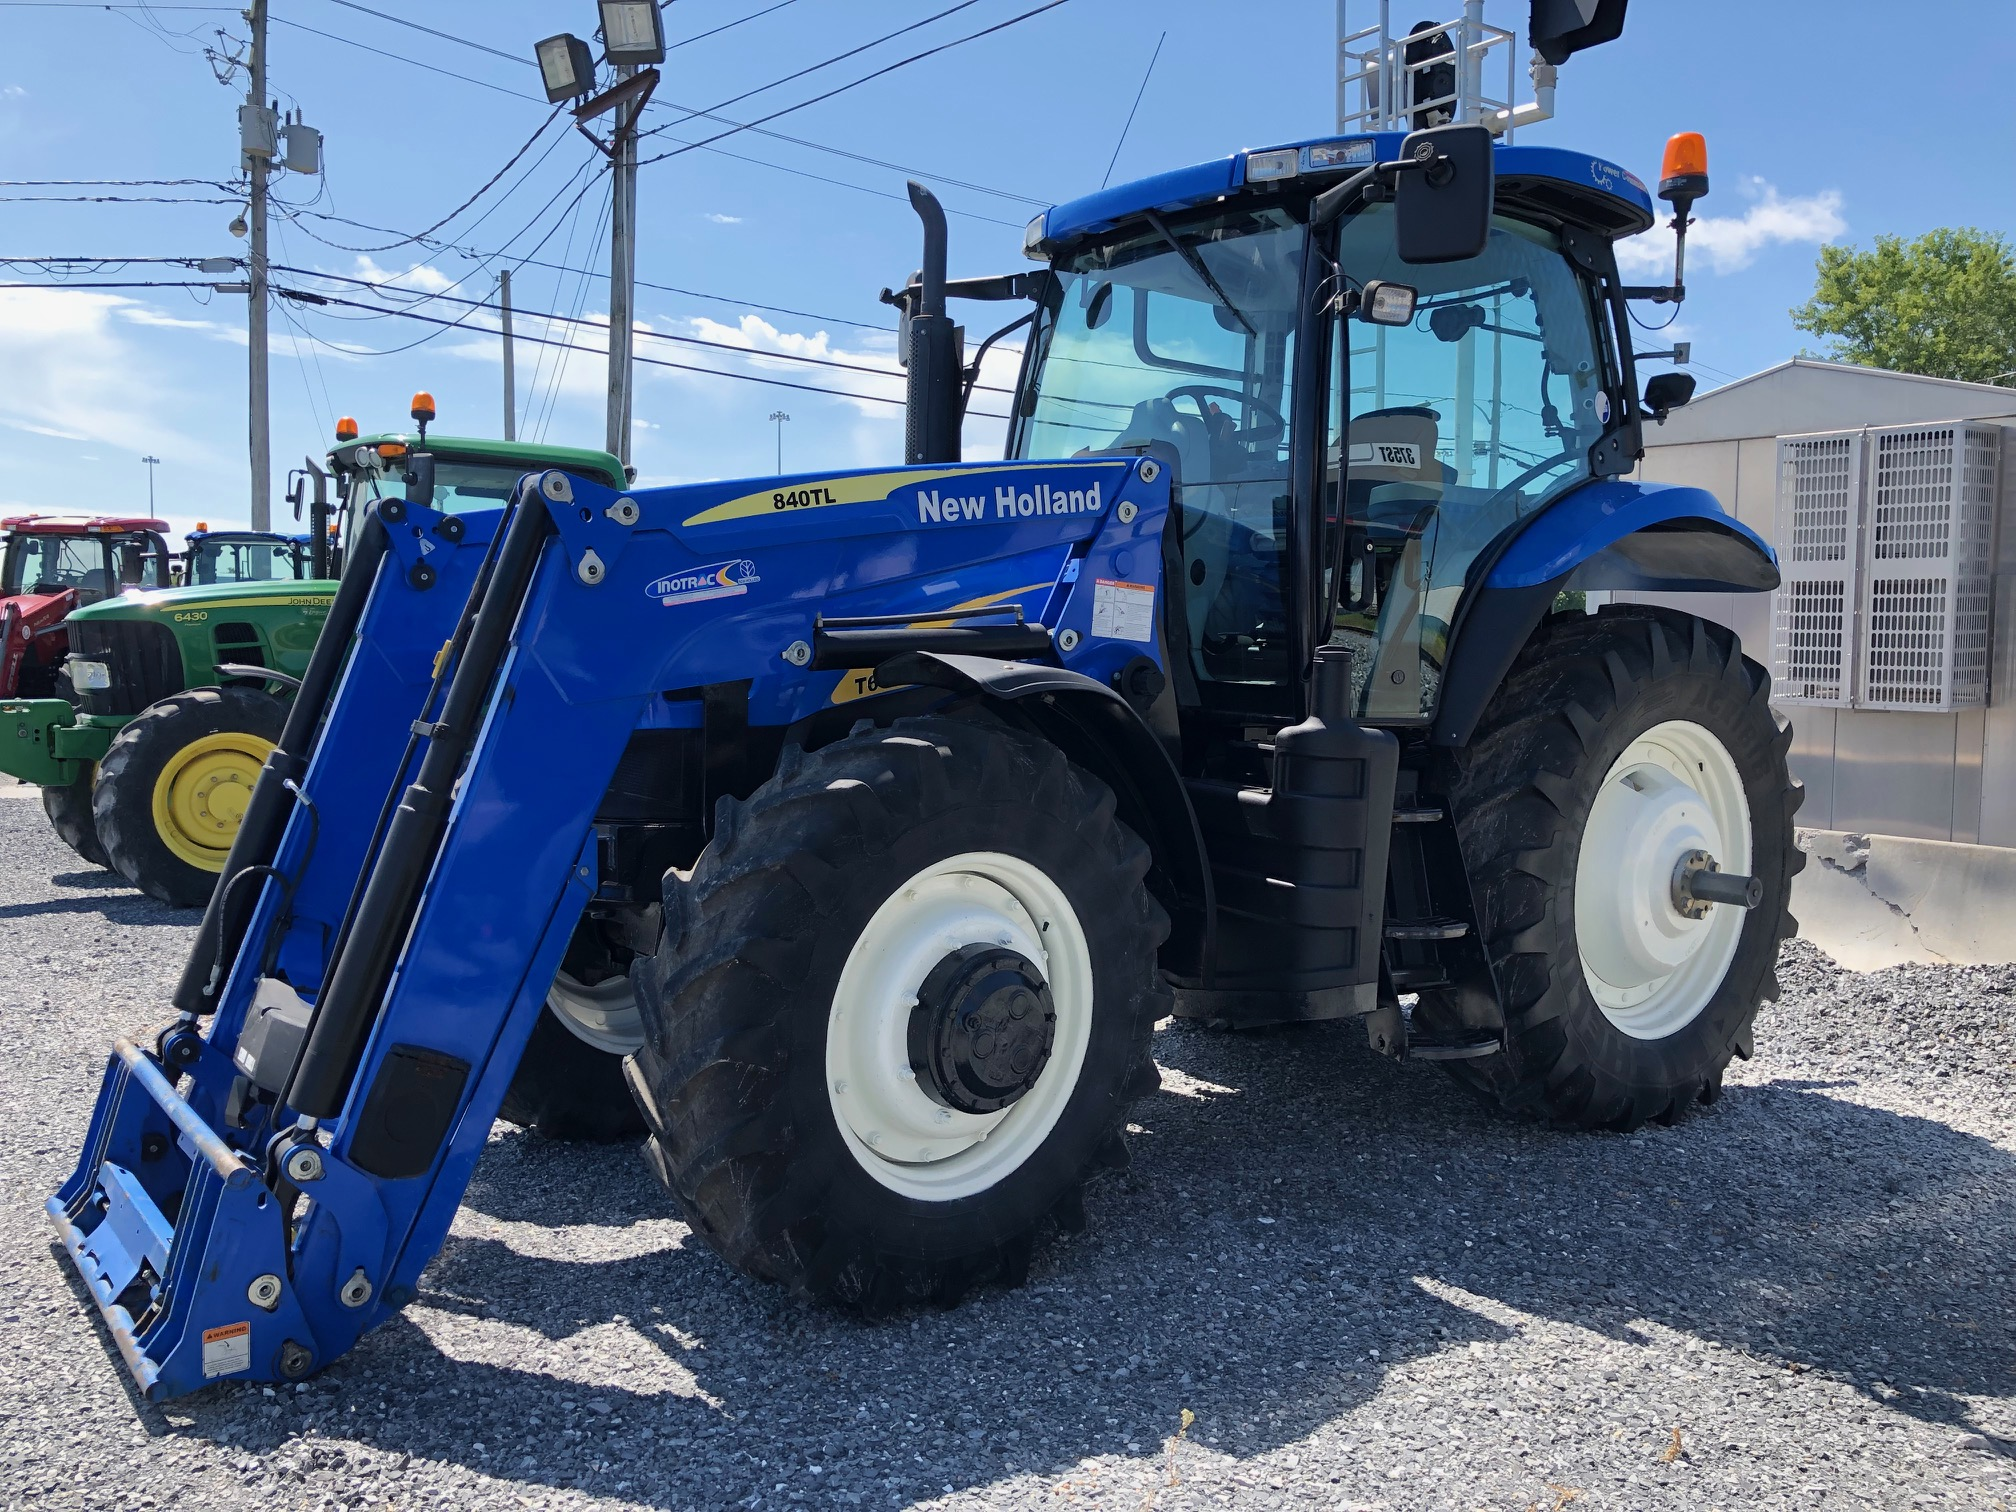 Tracteur New Holland 6030 Elite